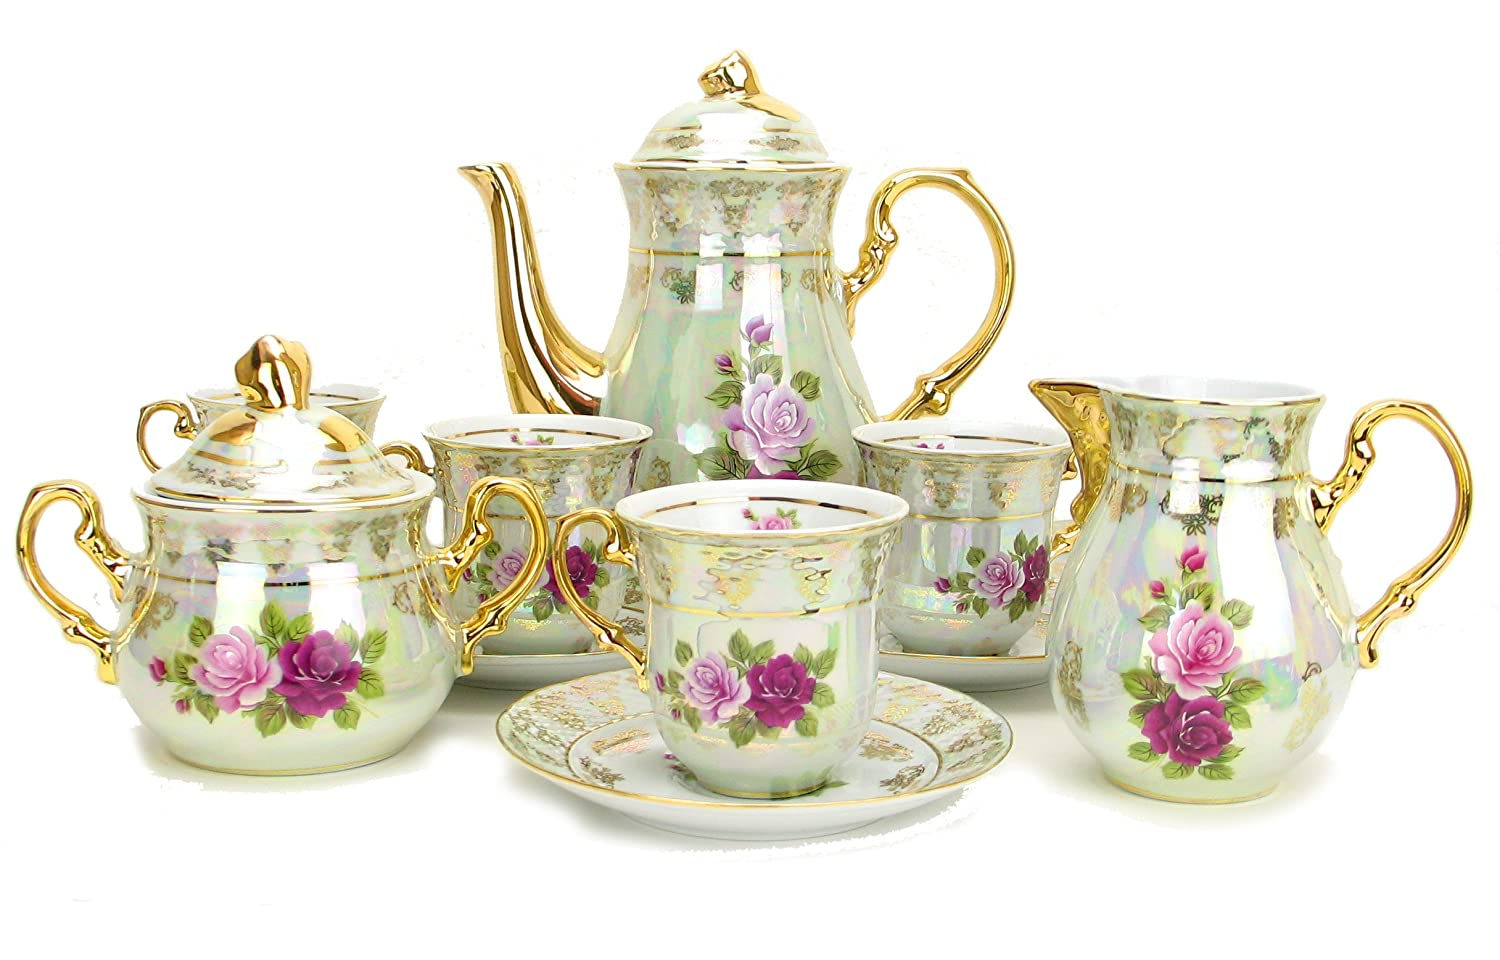 Euro Porcelain 17-Pc. Vintage Pink & Red Roses Tea Cup Coffee Set, White Pearlescent Floral Pattern with 24K Gold-Plated, Complete Service for 6, Original Czech Tableware Euro Porcelain Collection 588WF-17